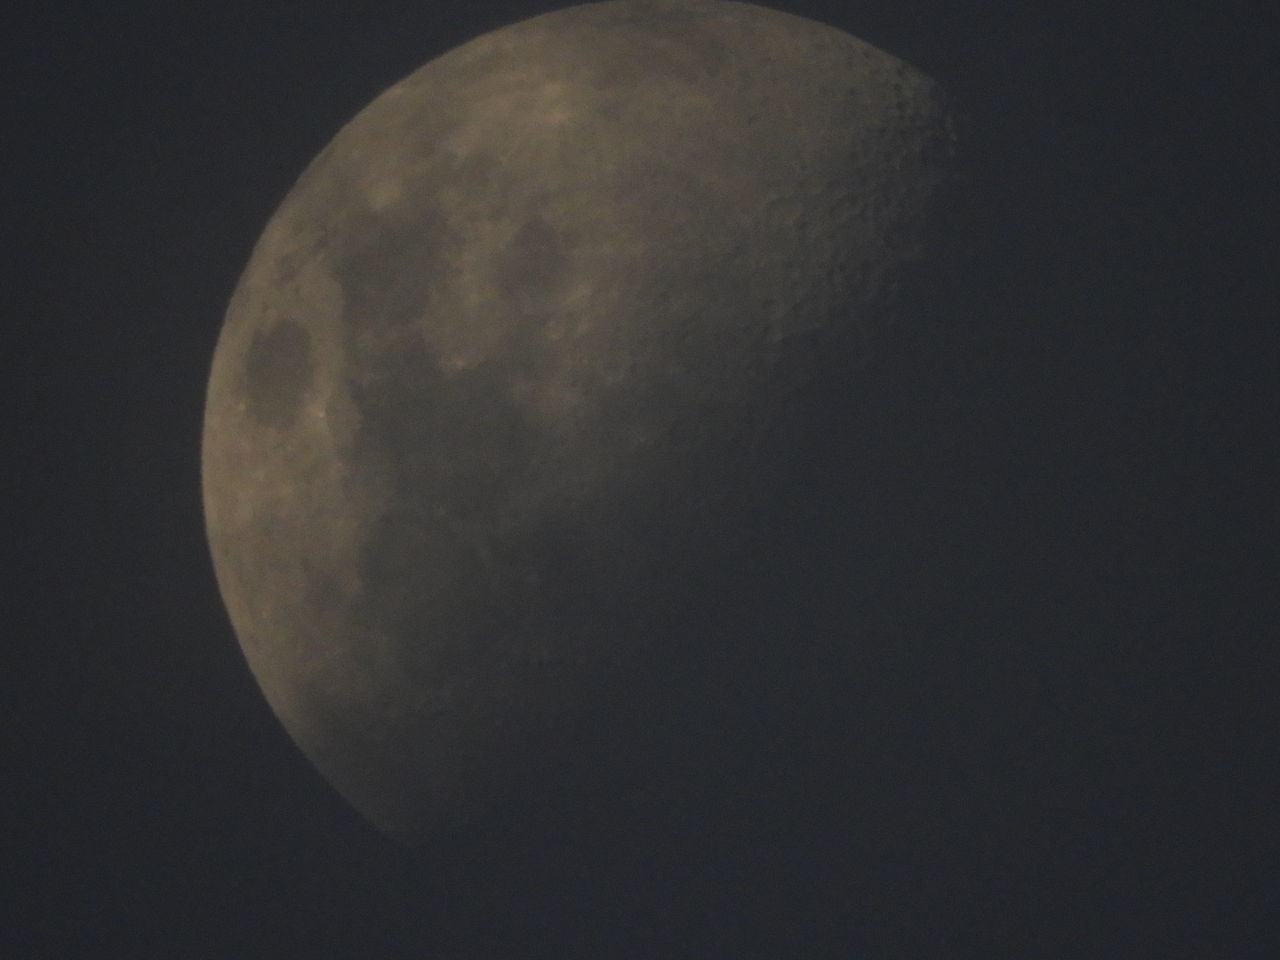 moon, astronomy, night, moon surface, planetary moon, beauty in nature, space exploration, circle, nature, scenics, majestic, tranquility, space, tranquil scene, half moon, low angle view, no people, discovery, sky, outdoors, crescent, semi-circle, clear sky, close-up